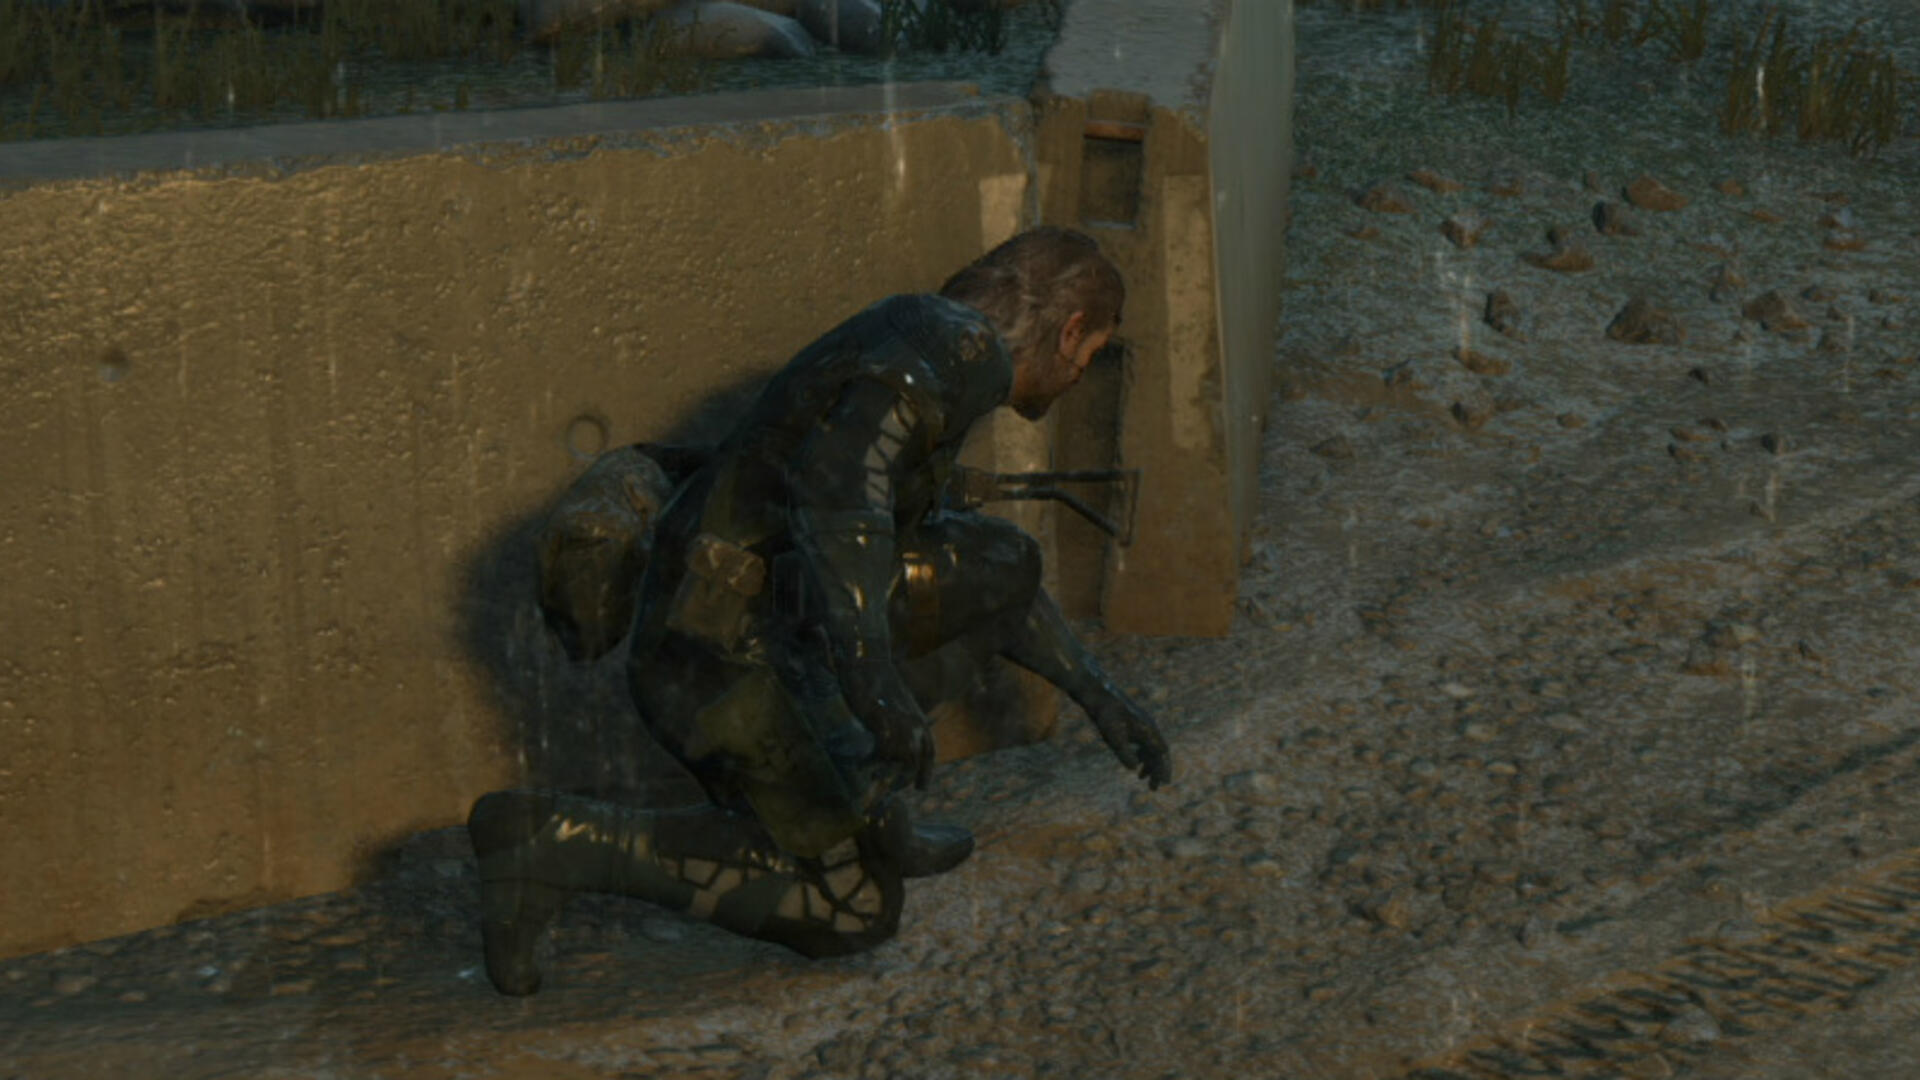 Metal Gear Solid 5 Ground Zeroes: '1080P' and '60FPS' Are Important to Gamers